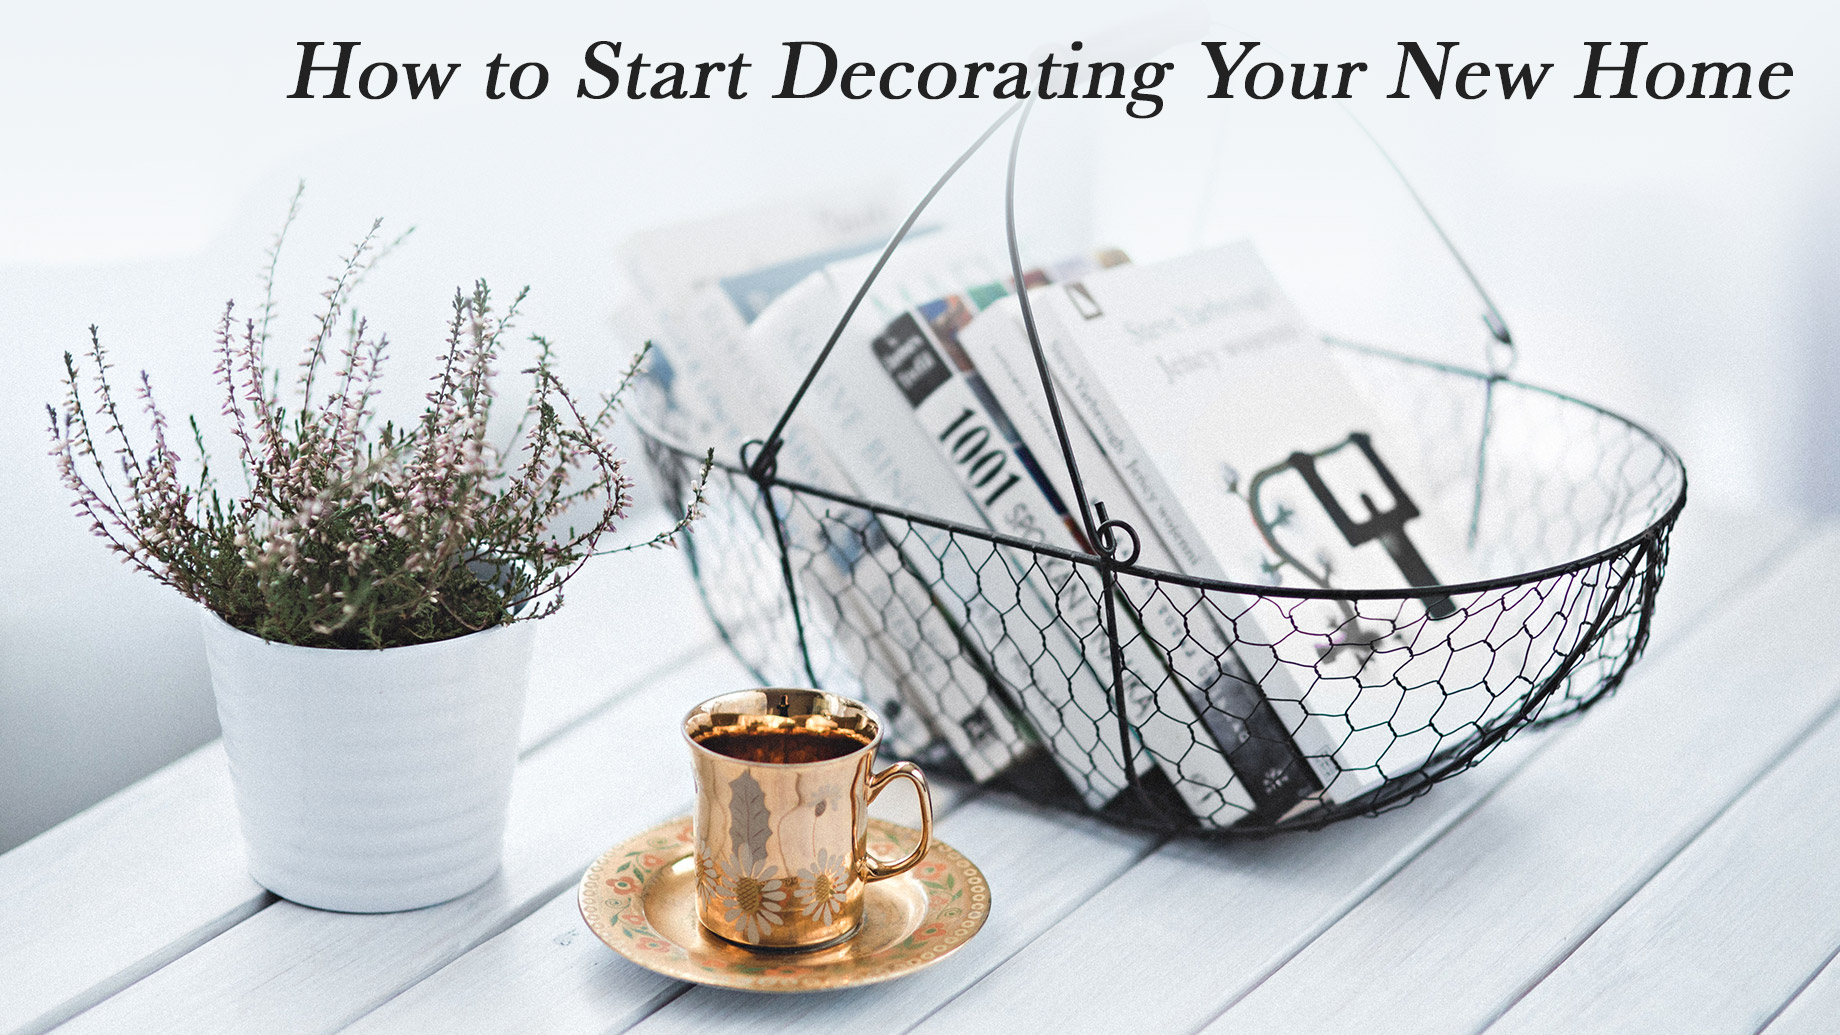 Home Design 101 - How to Start Decorating Your New Home